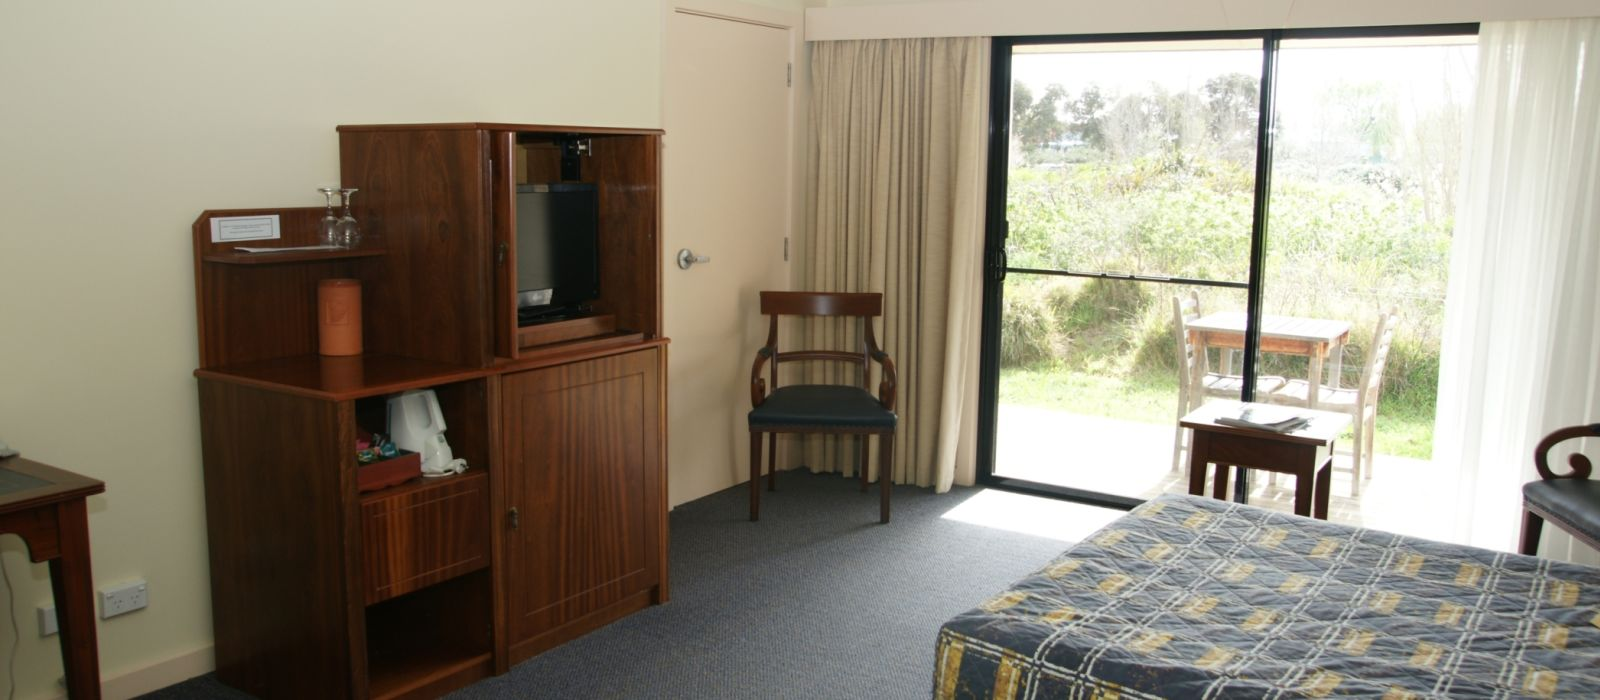 Hotel Tidal Waters Resort Australien